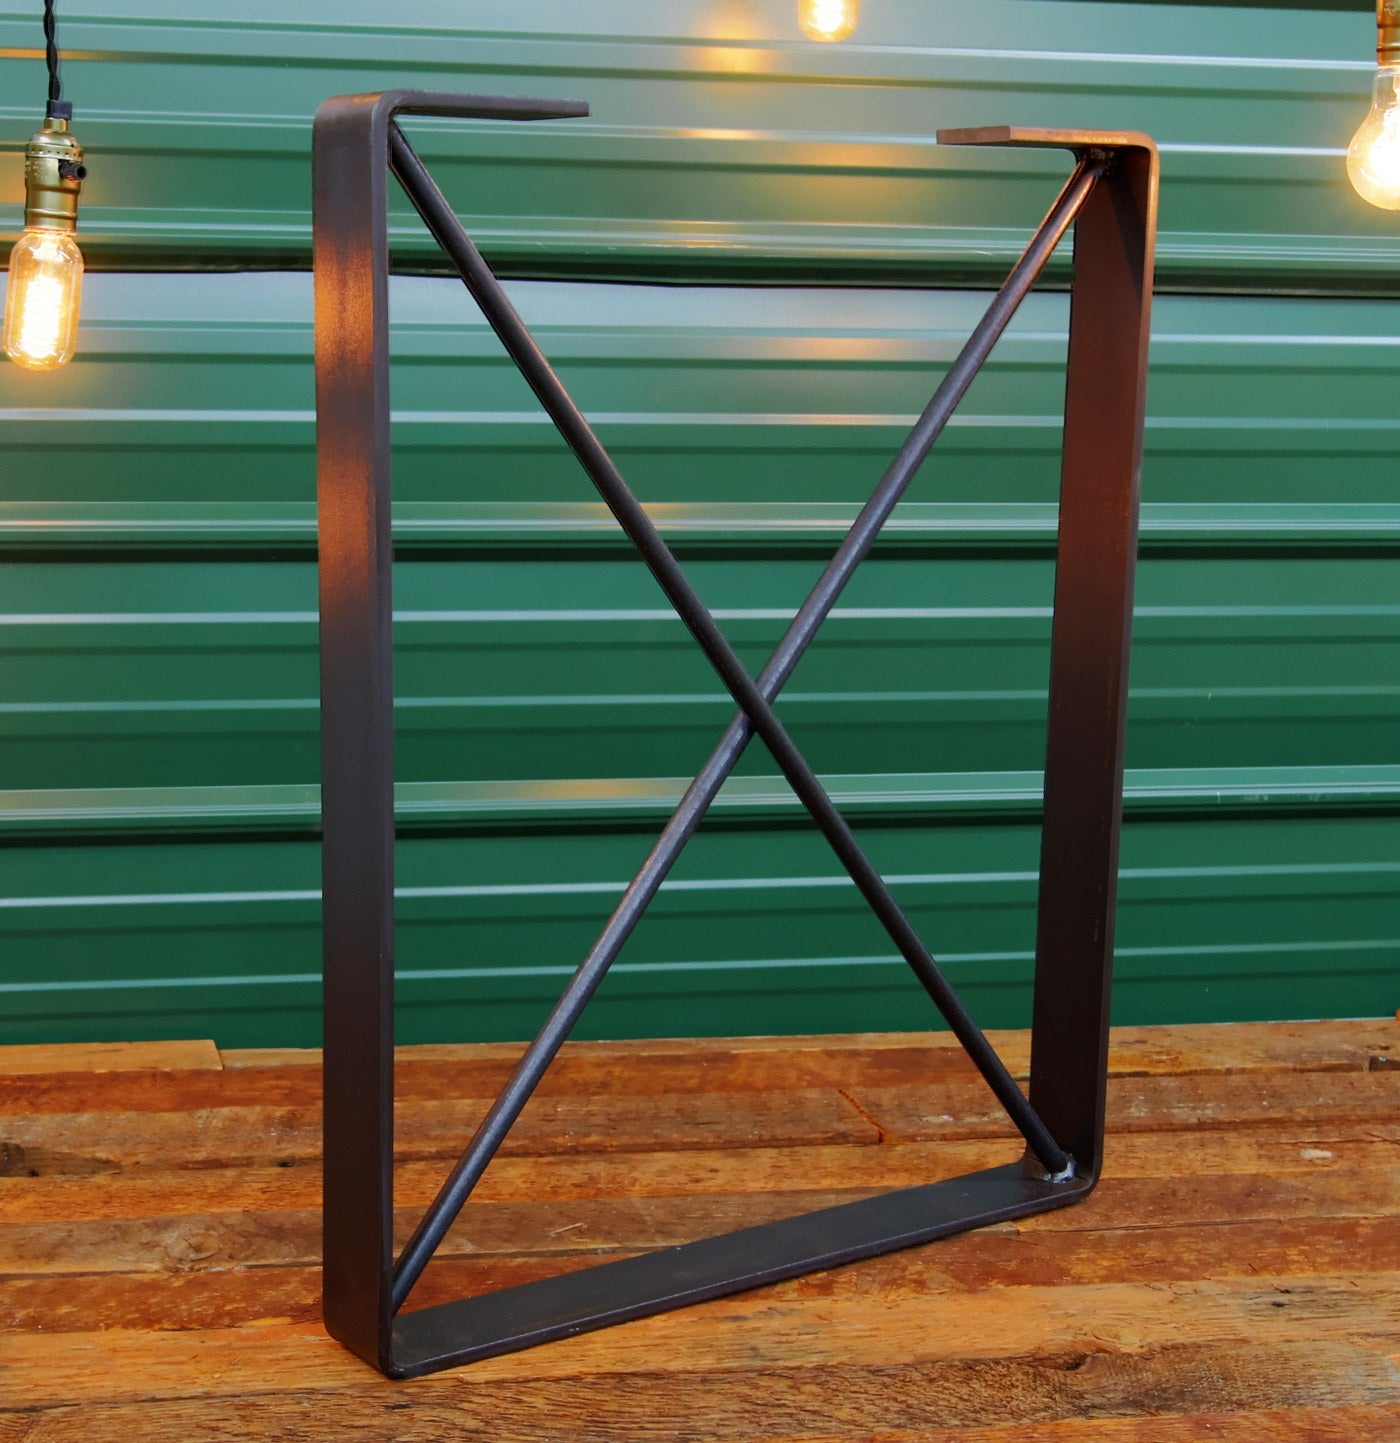 Metal desk leg 'Corral' by Symmetry Hardware